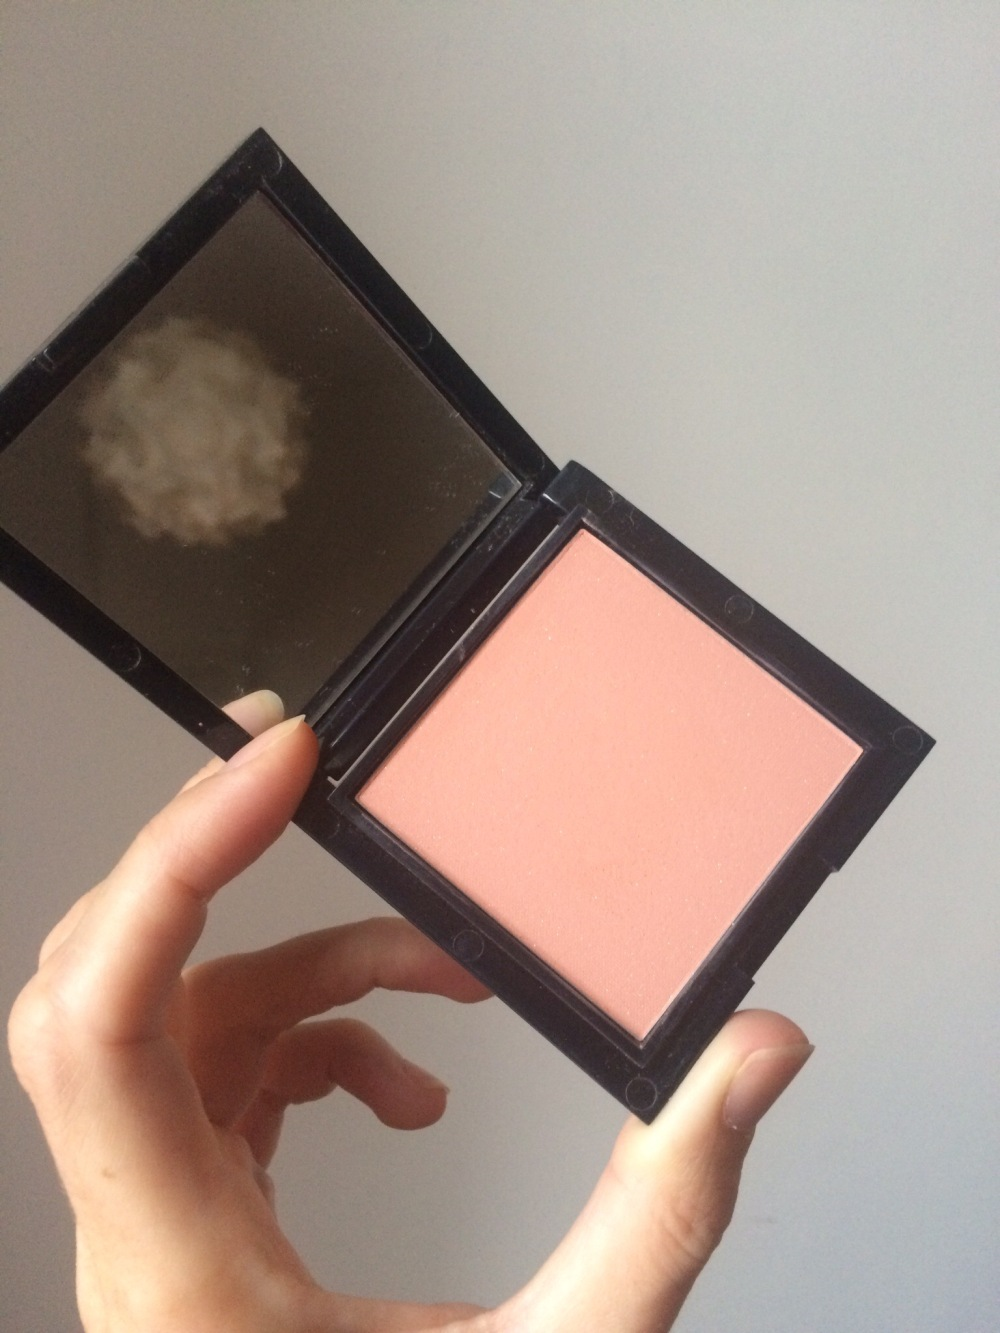 Spend or Save beauty tag Cargo HD Blush in Peach